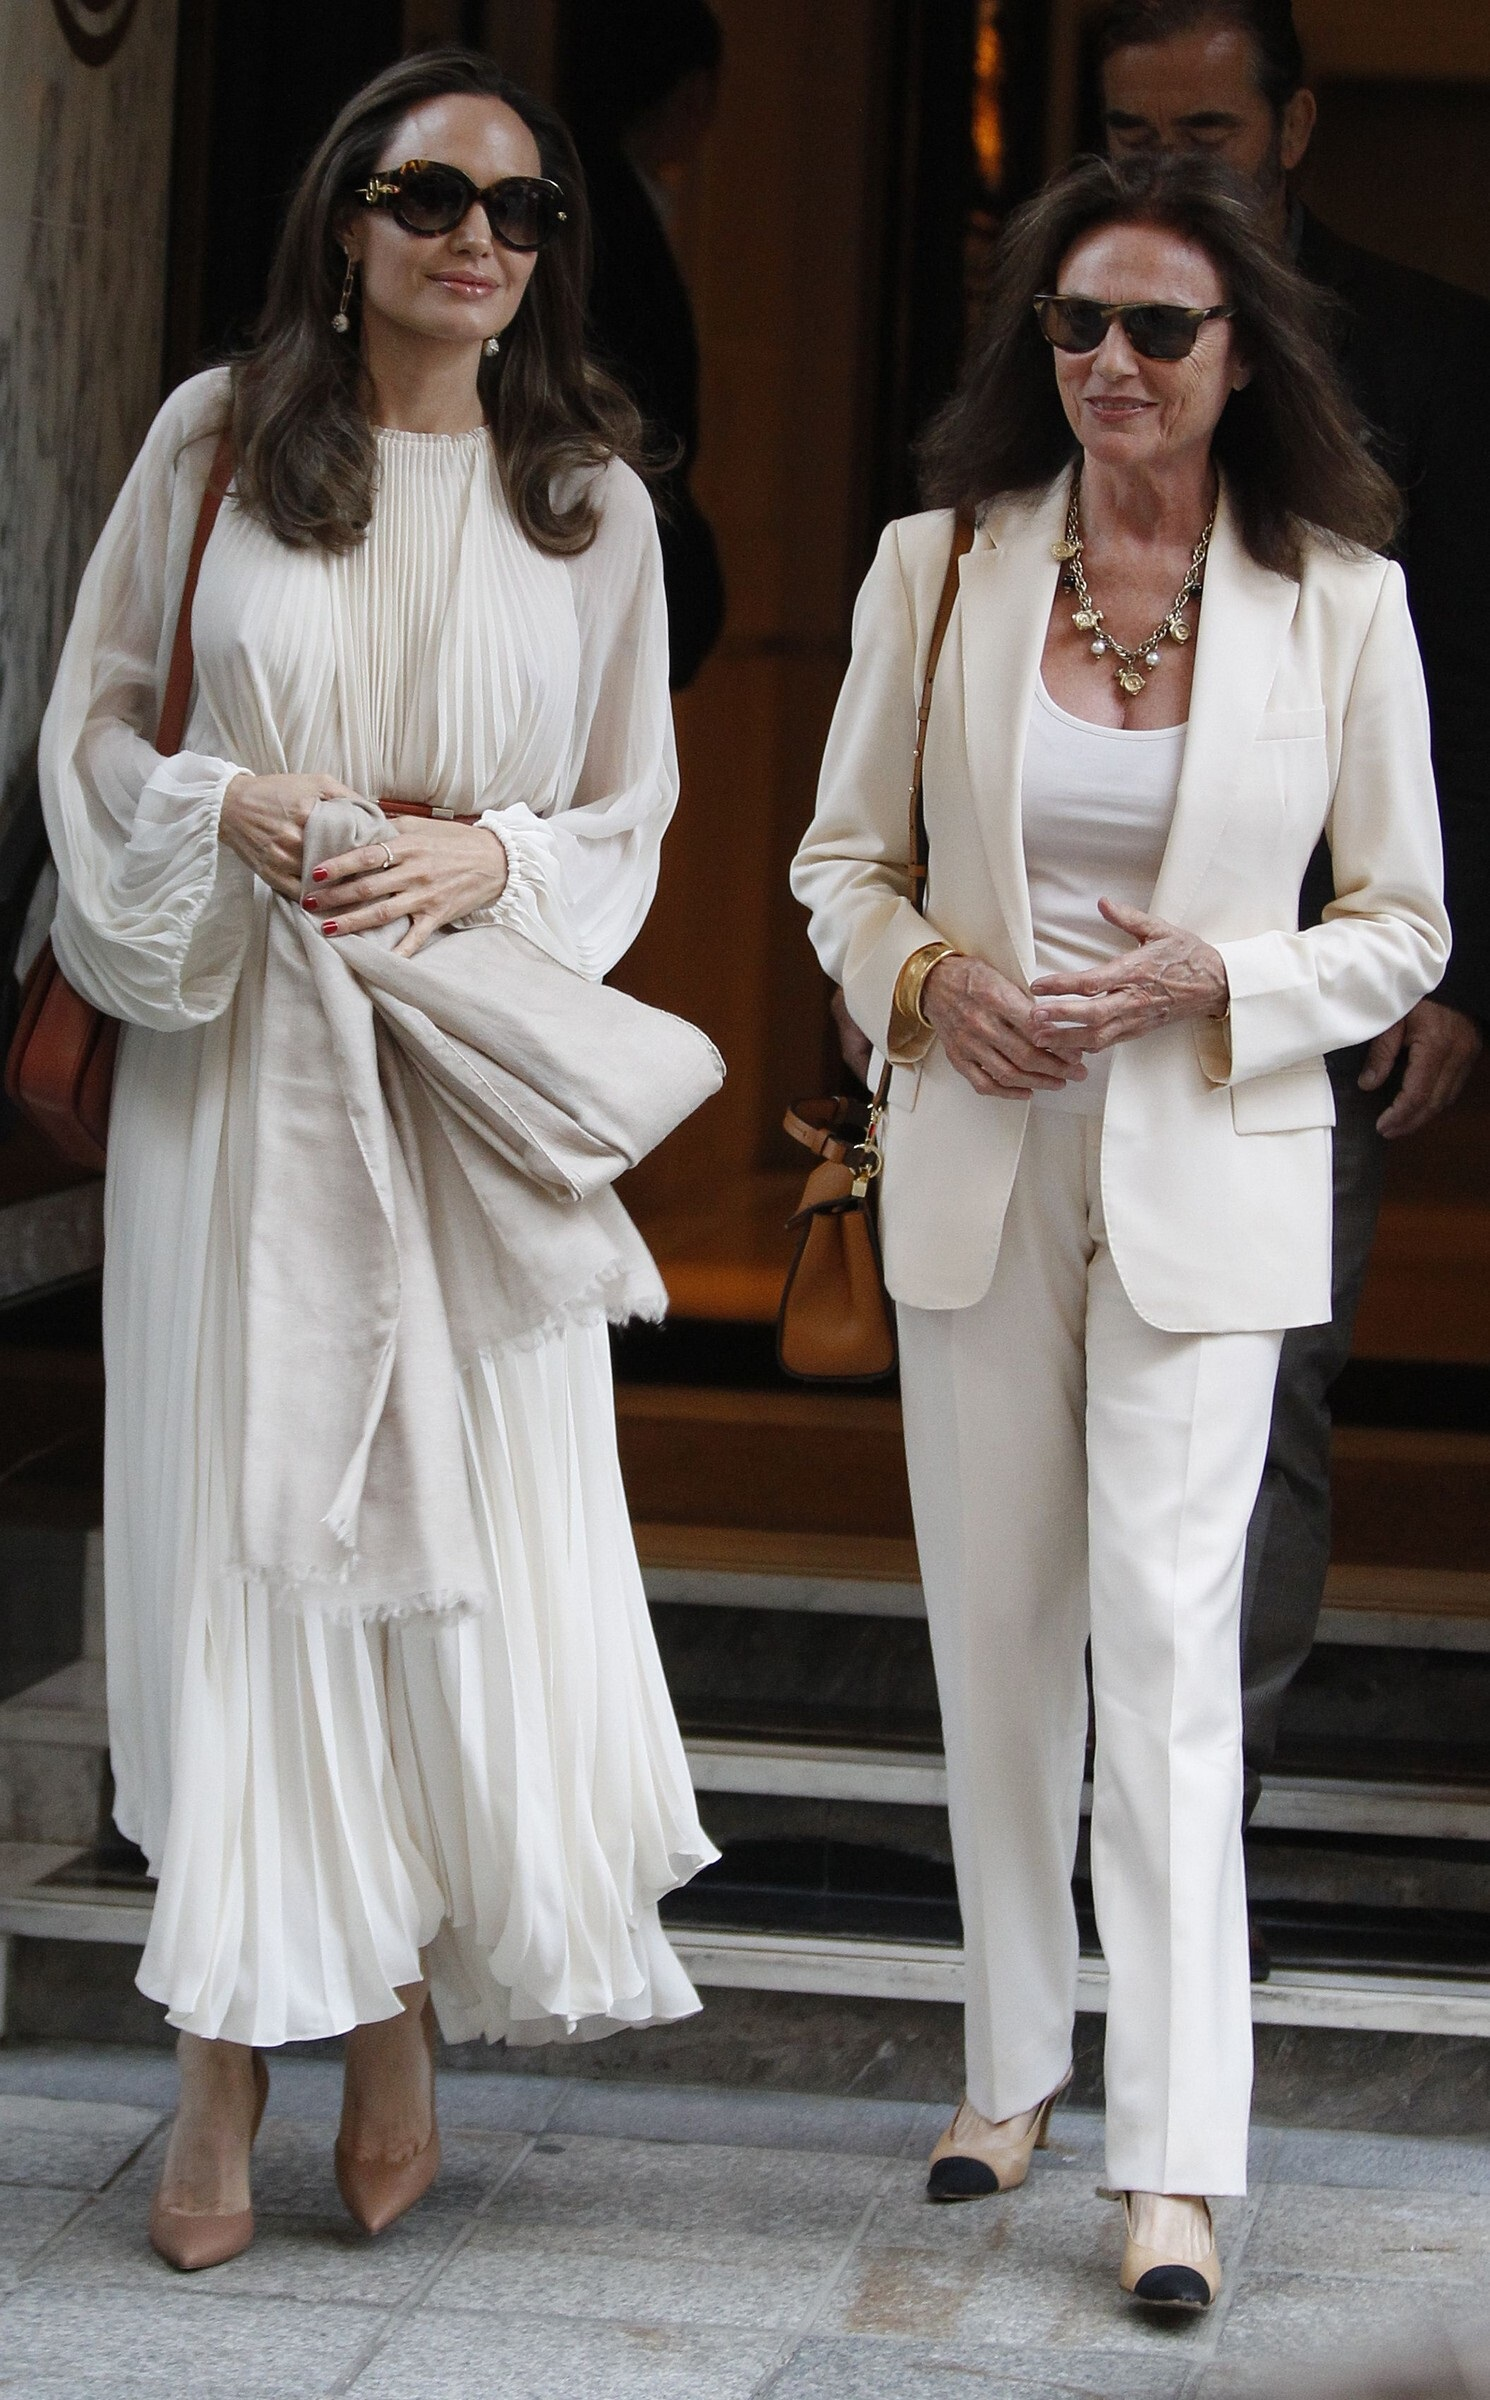 Angelina Jolie Spotted With Jacqueline Bisset At Paris